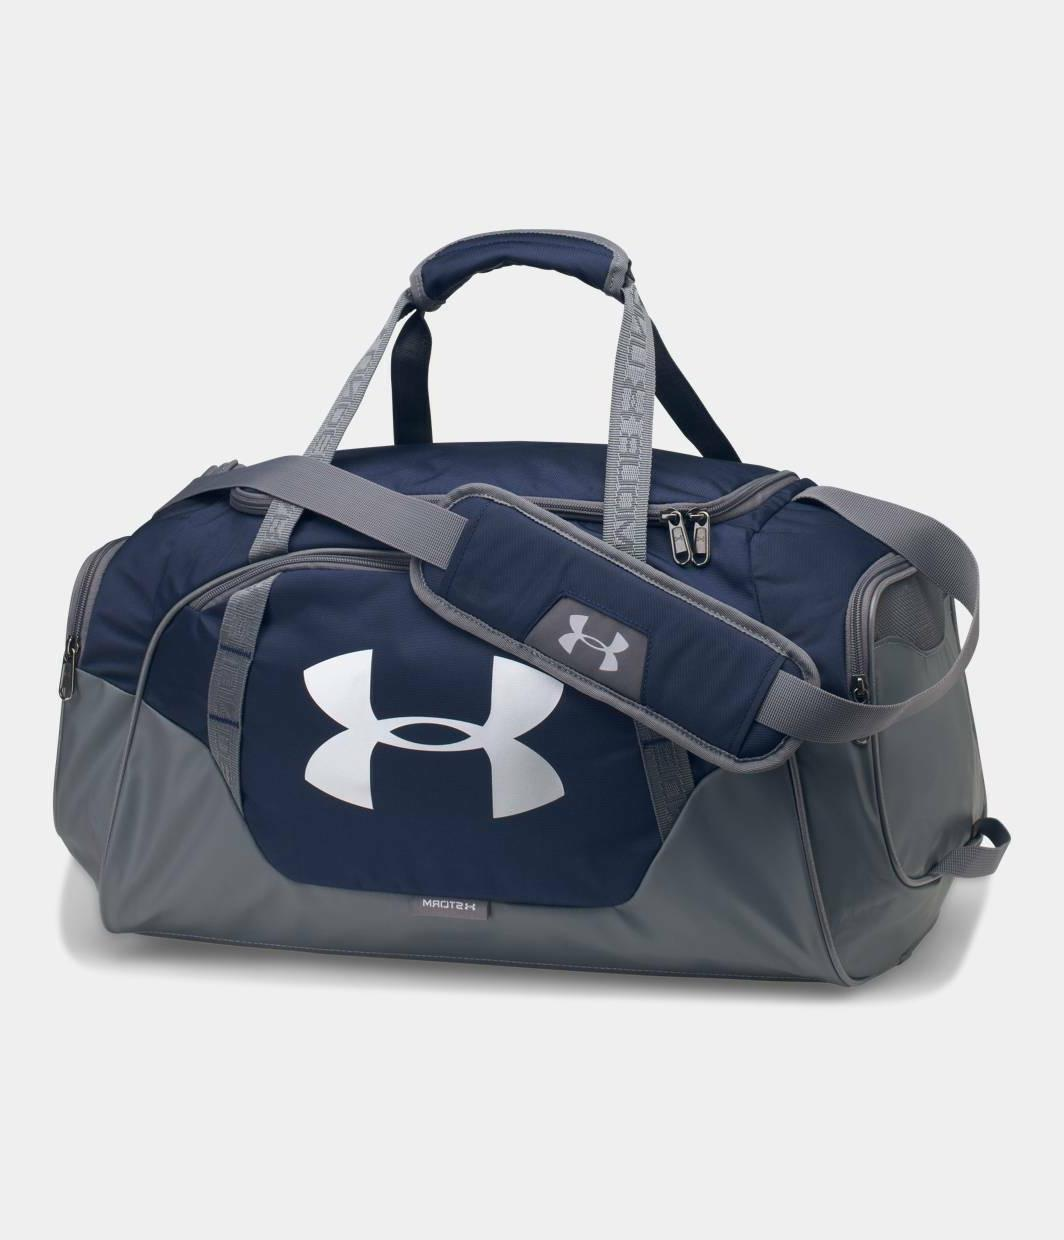 Under 3.0 NAVY Bag Sport Duffel Bag NEW